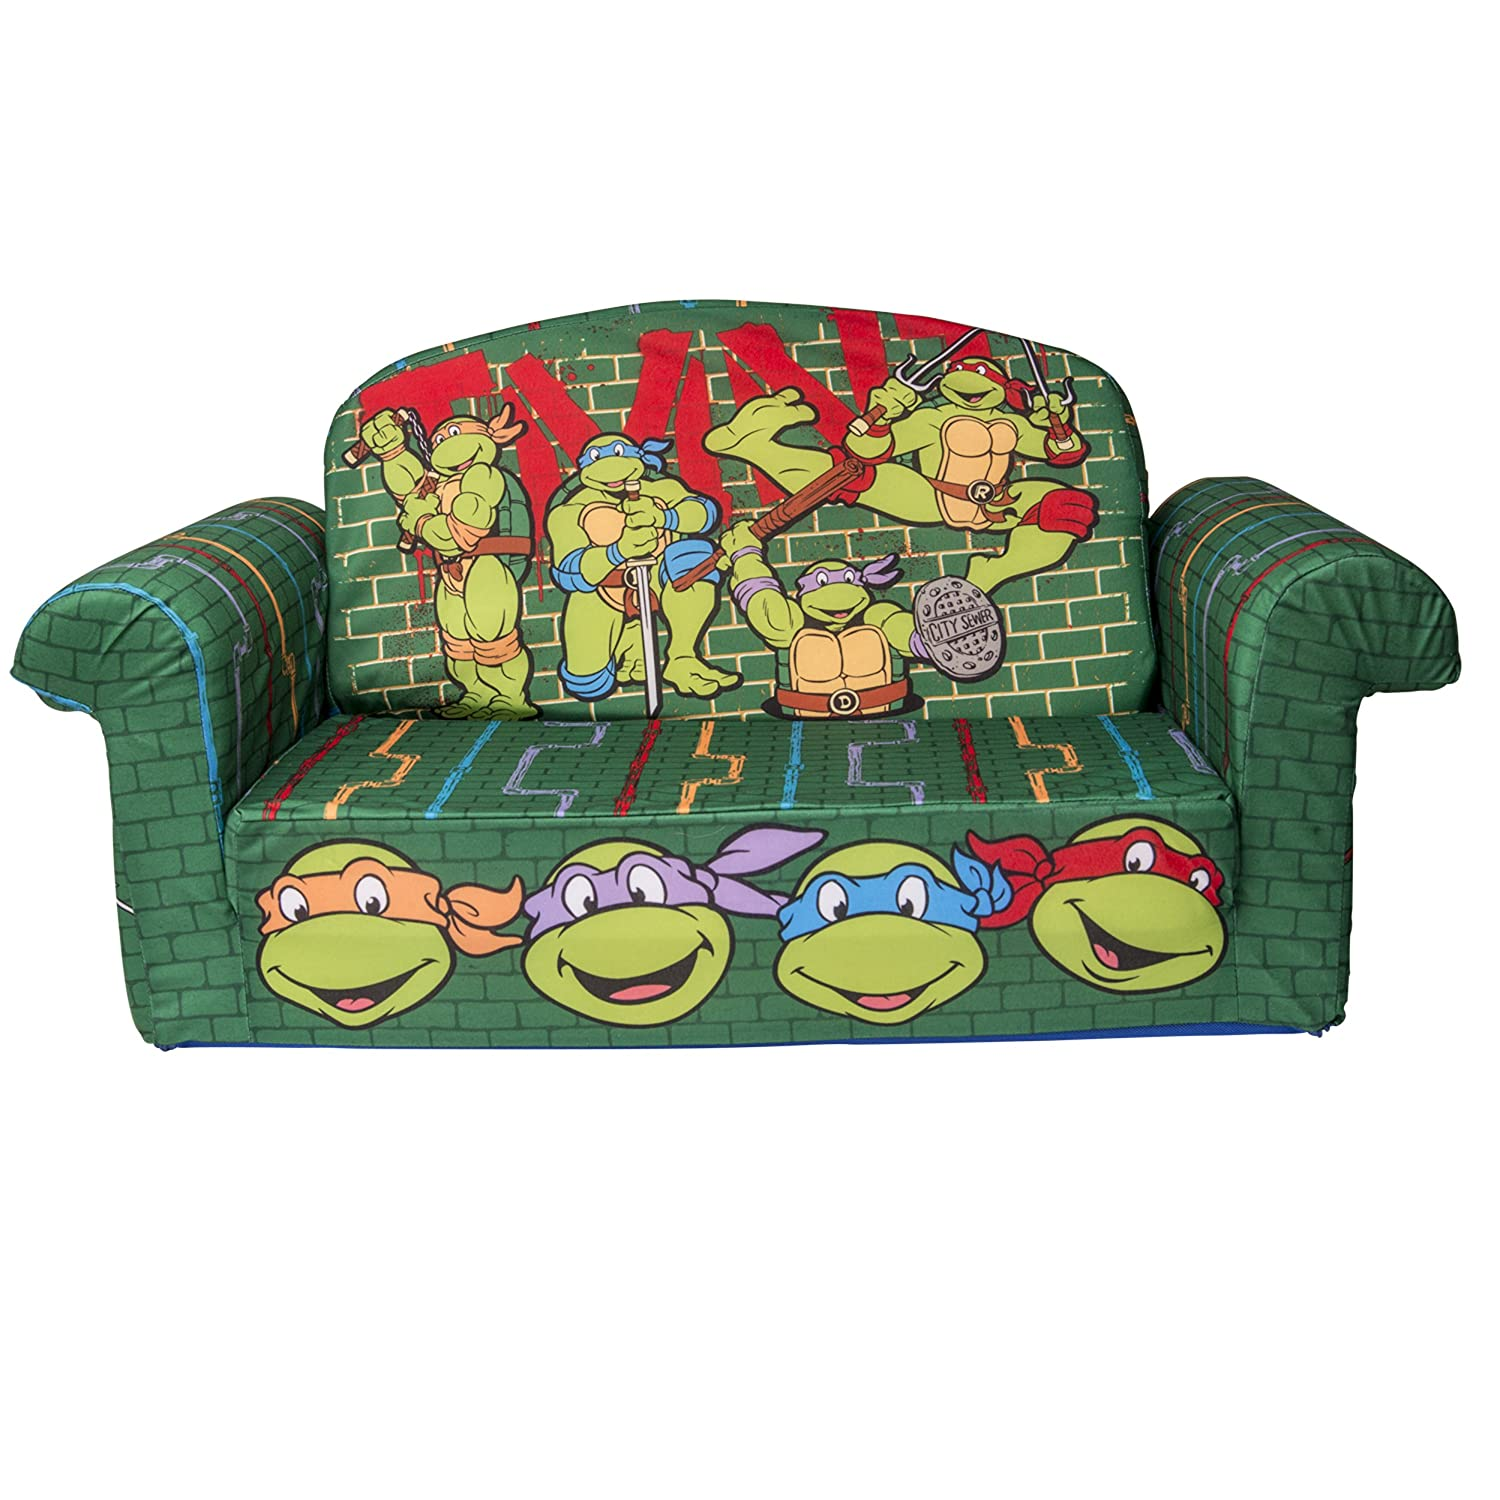 Marshmallow Furniture, 2 in 1 Flip Open Foam Sofa, Teenage Mutant Ninja Turtles, Retro, by Spin Master